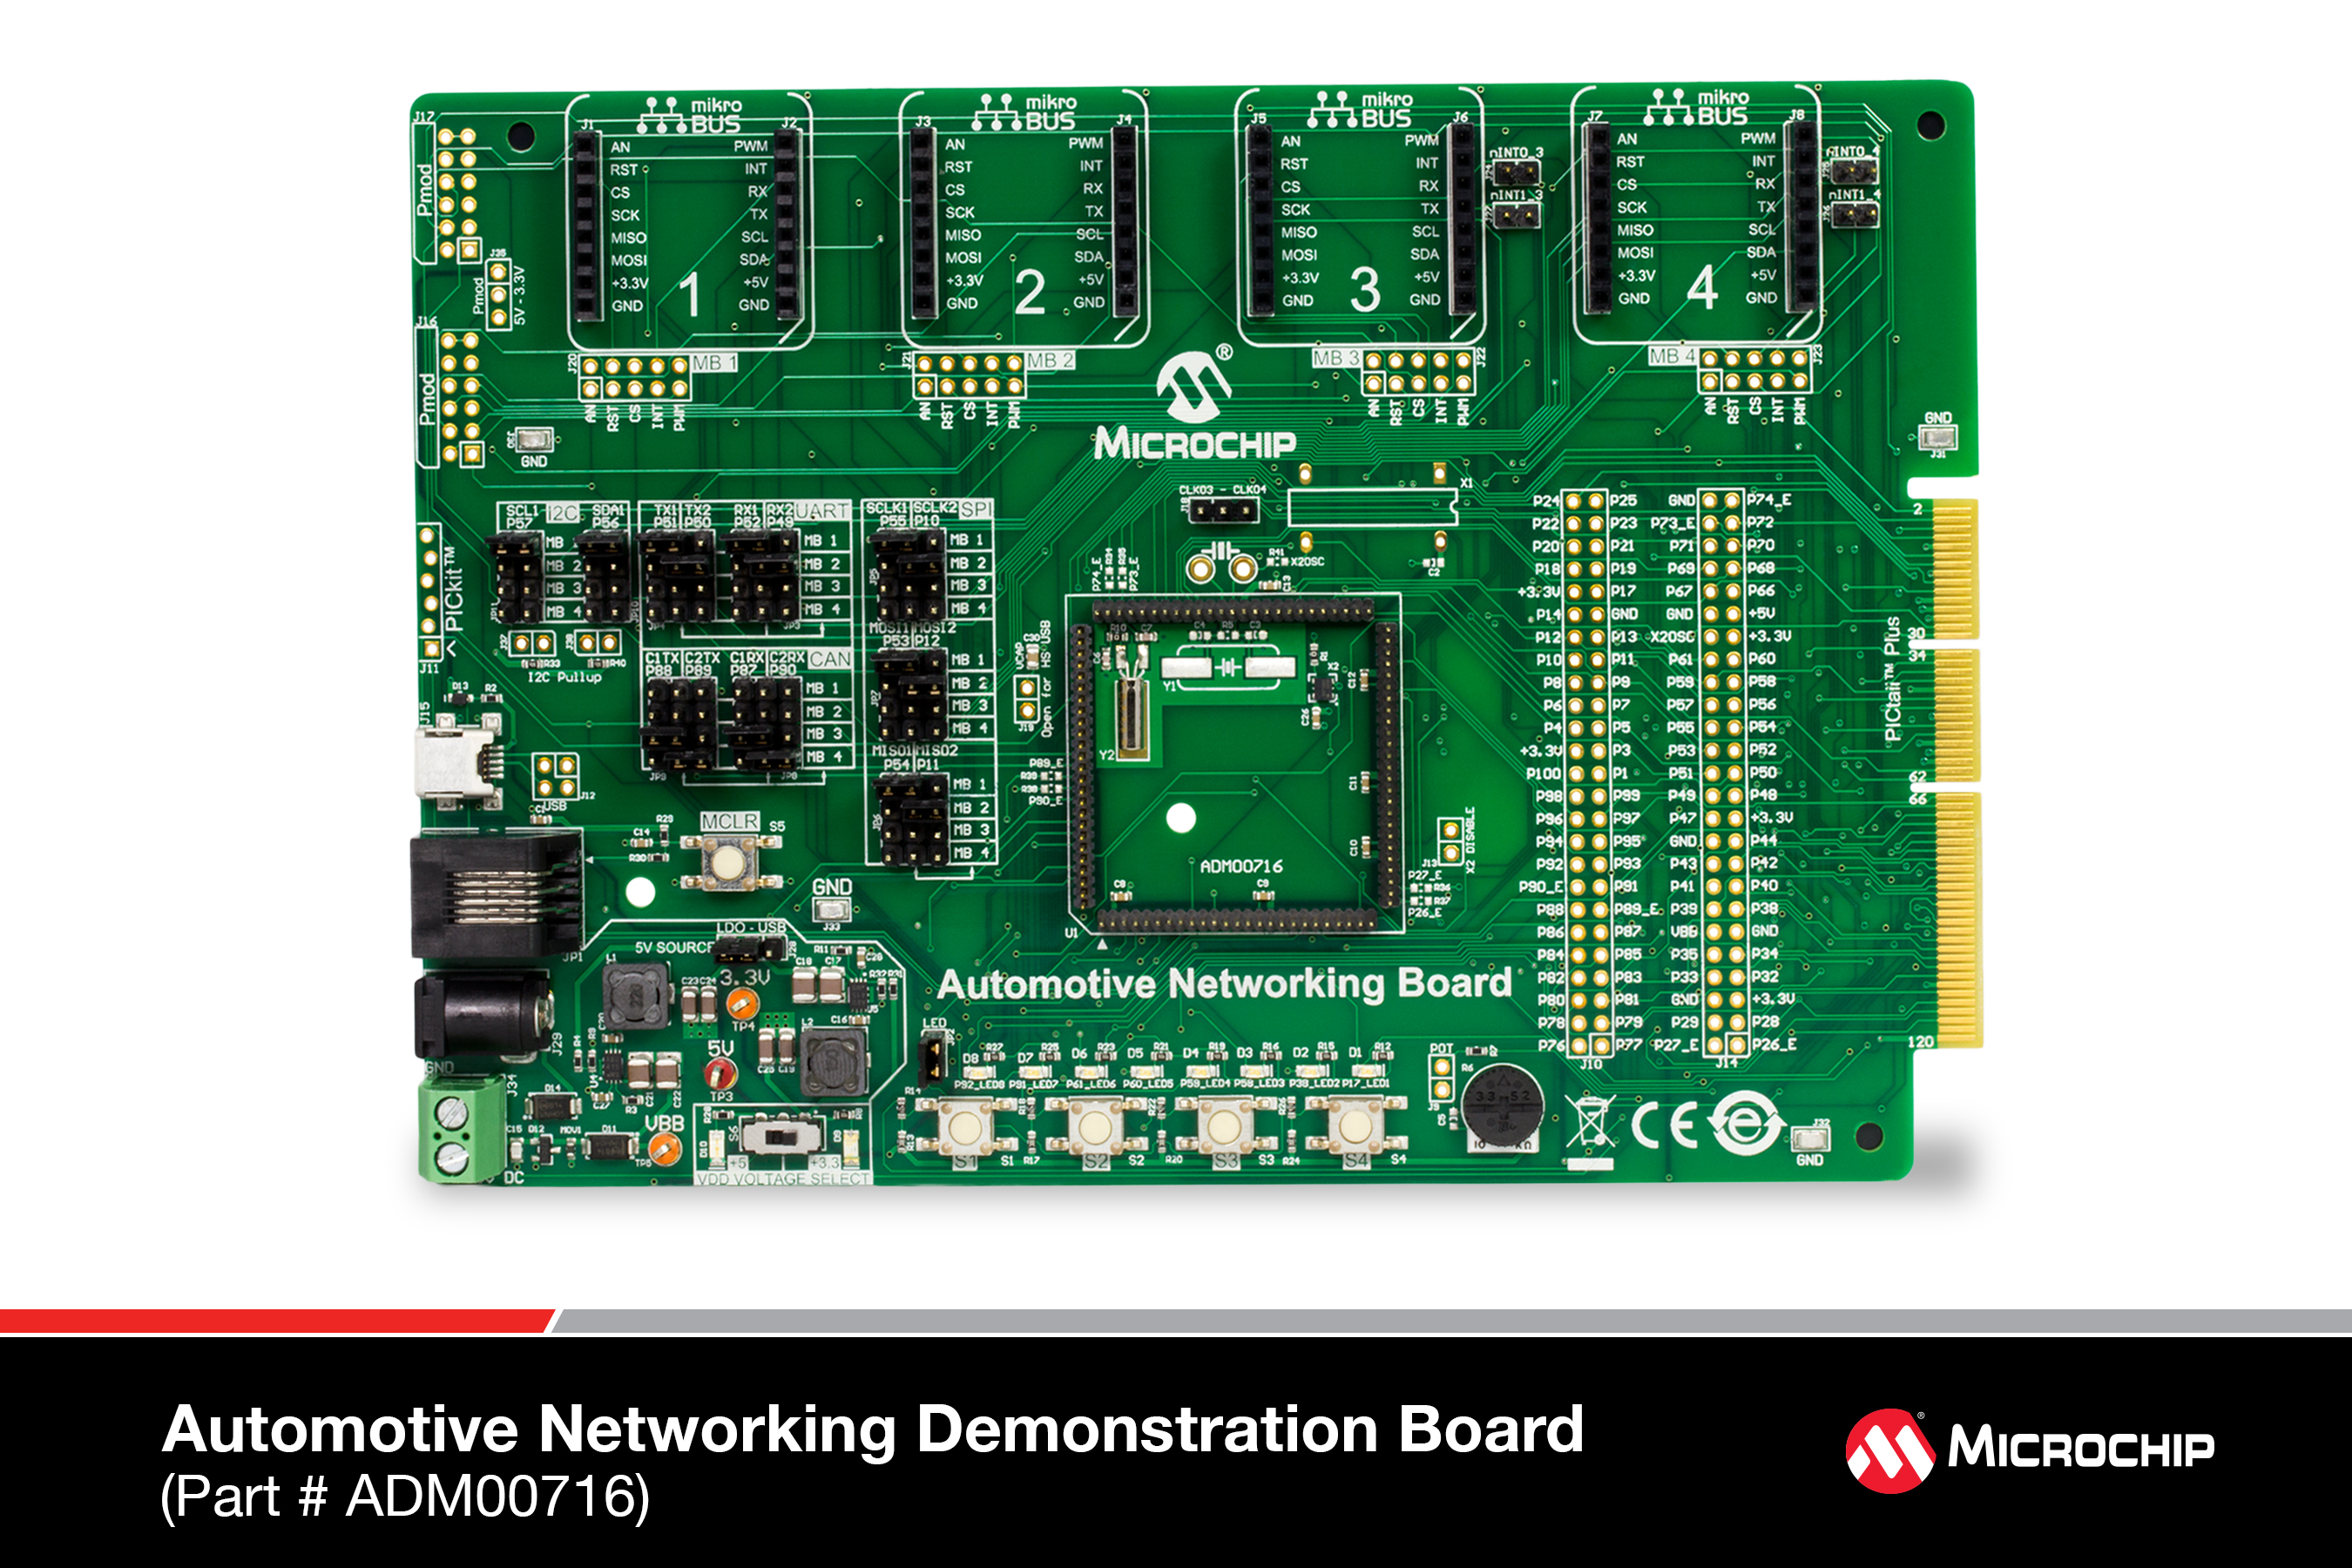 Automotive Networking Development Board